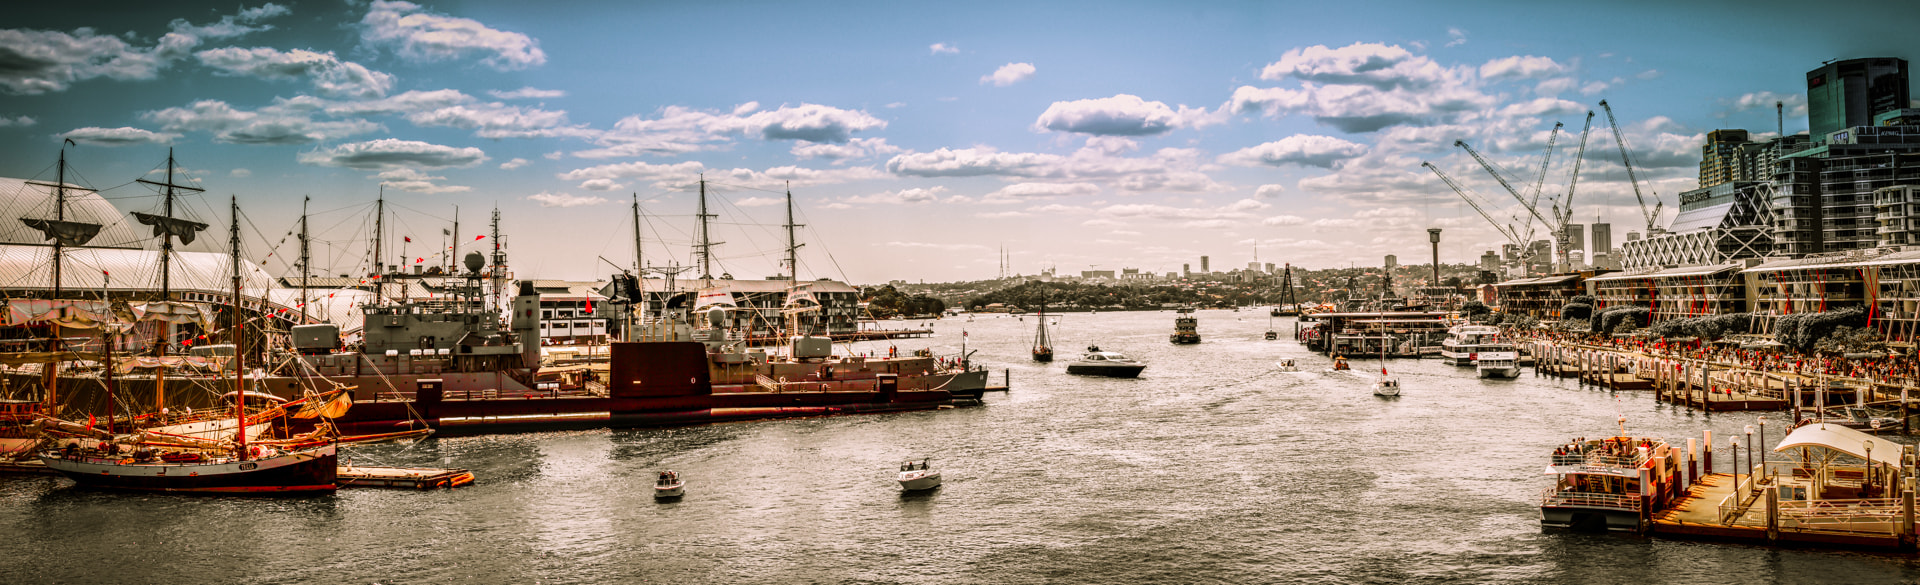 Photograph Sydney Fleet Review by Igor Kasalovic on 500px